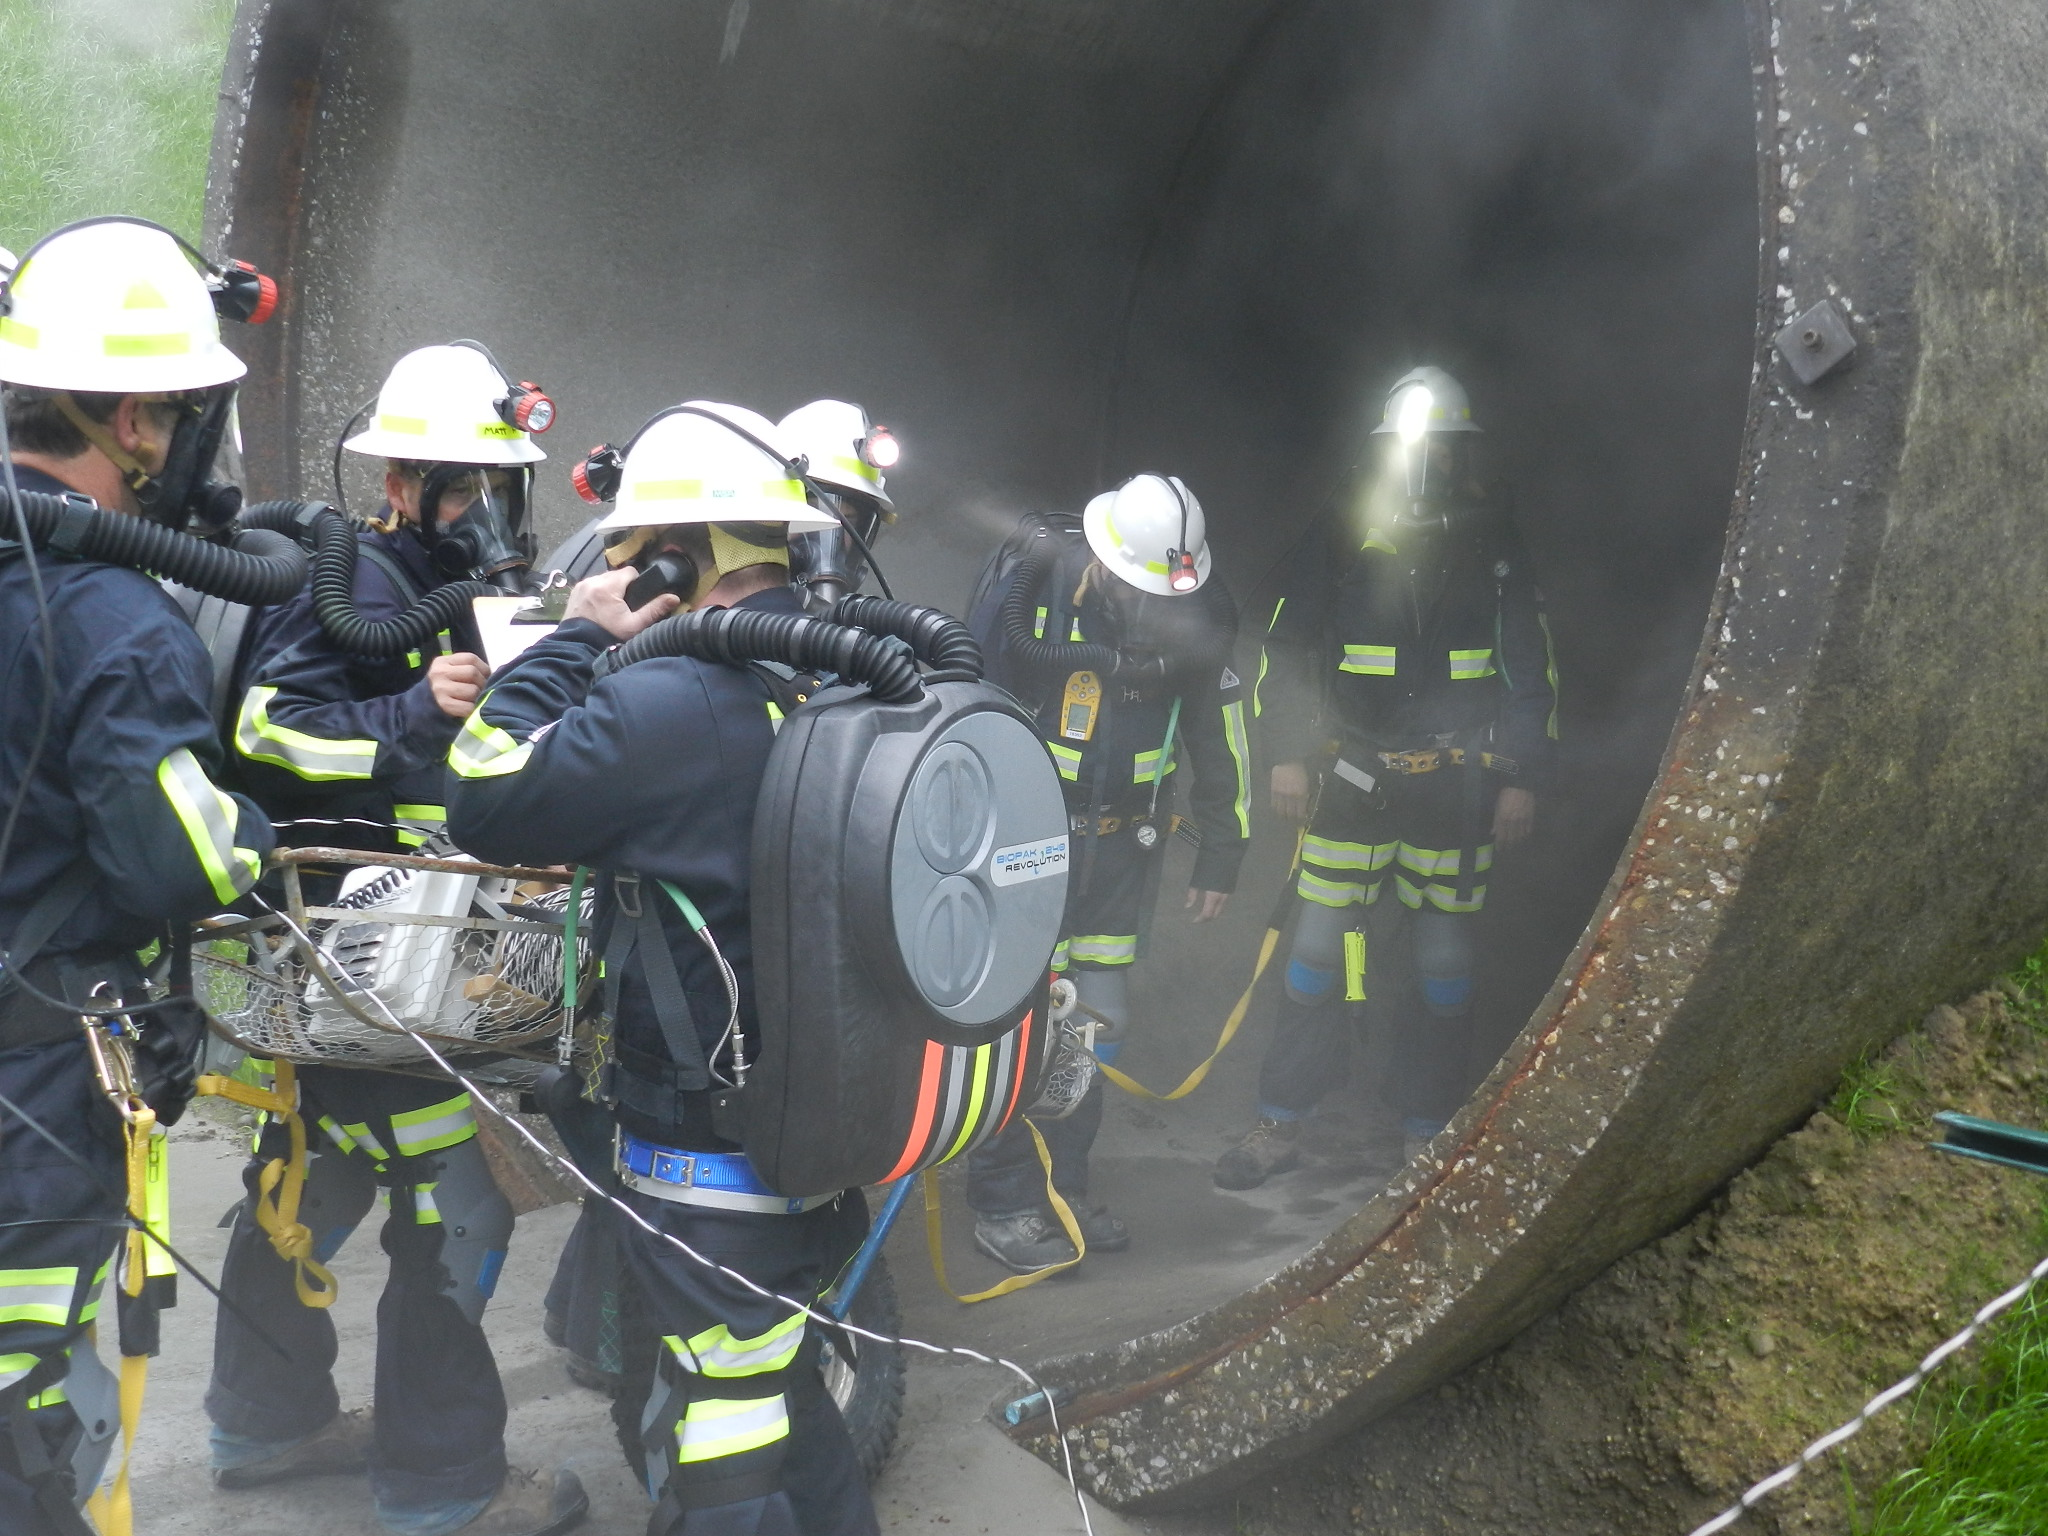 """Workers from contractor James W. Fowler Co prepare to enter a tunnel to """"rescue"""" their coworkers during a realistic training scenario at Satsop Business Park's new tunnel rescue training center."""